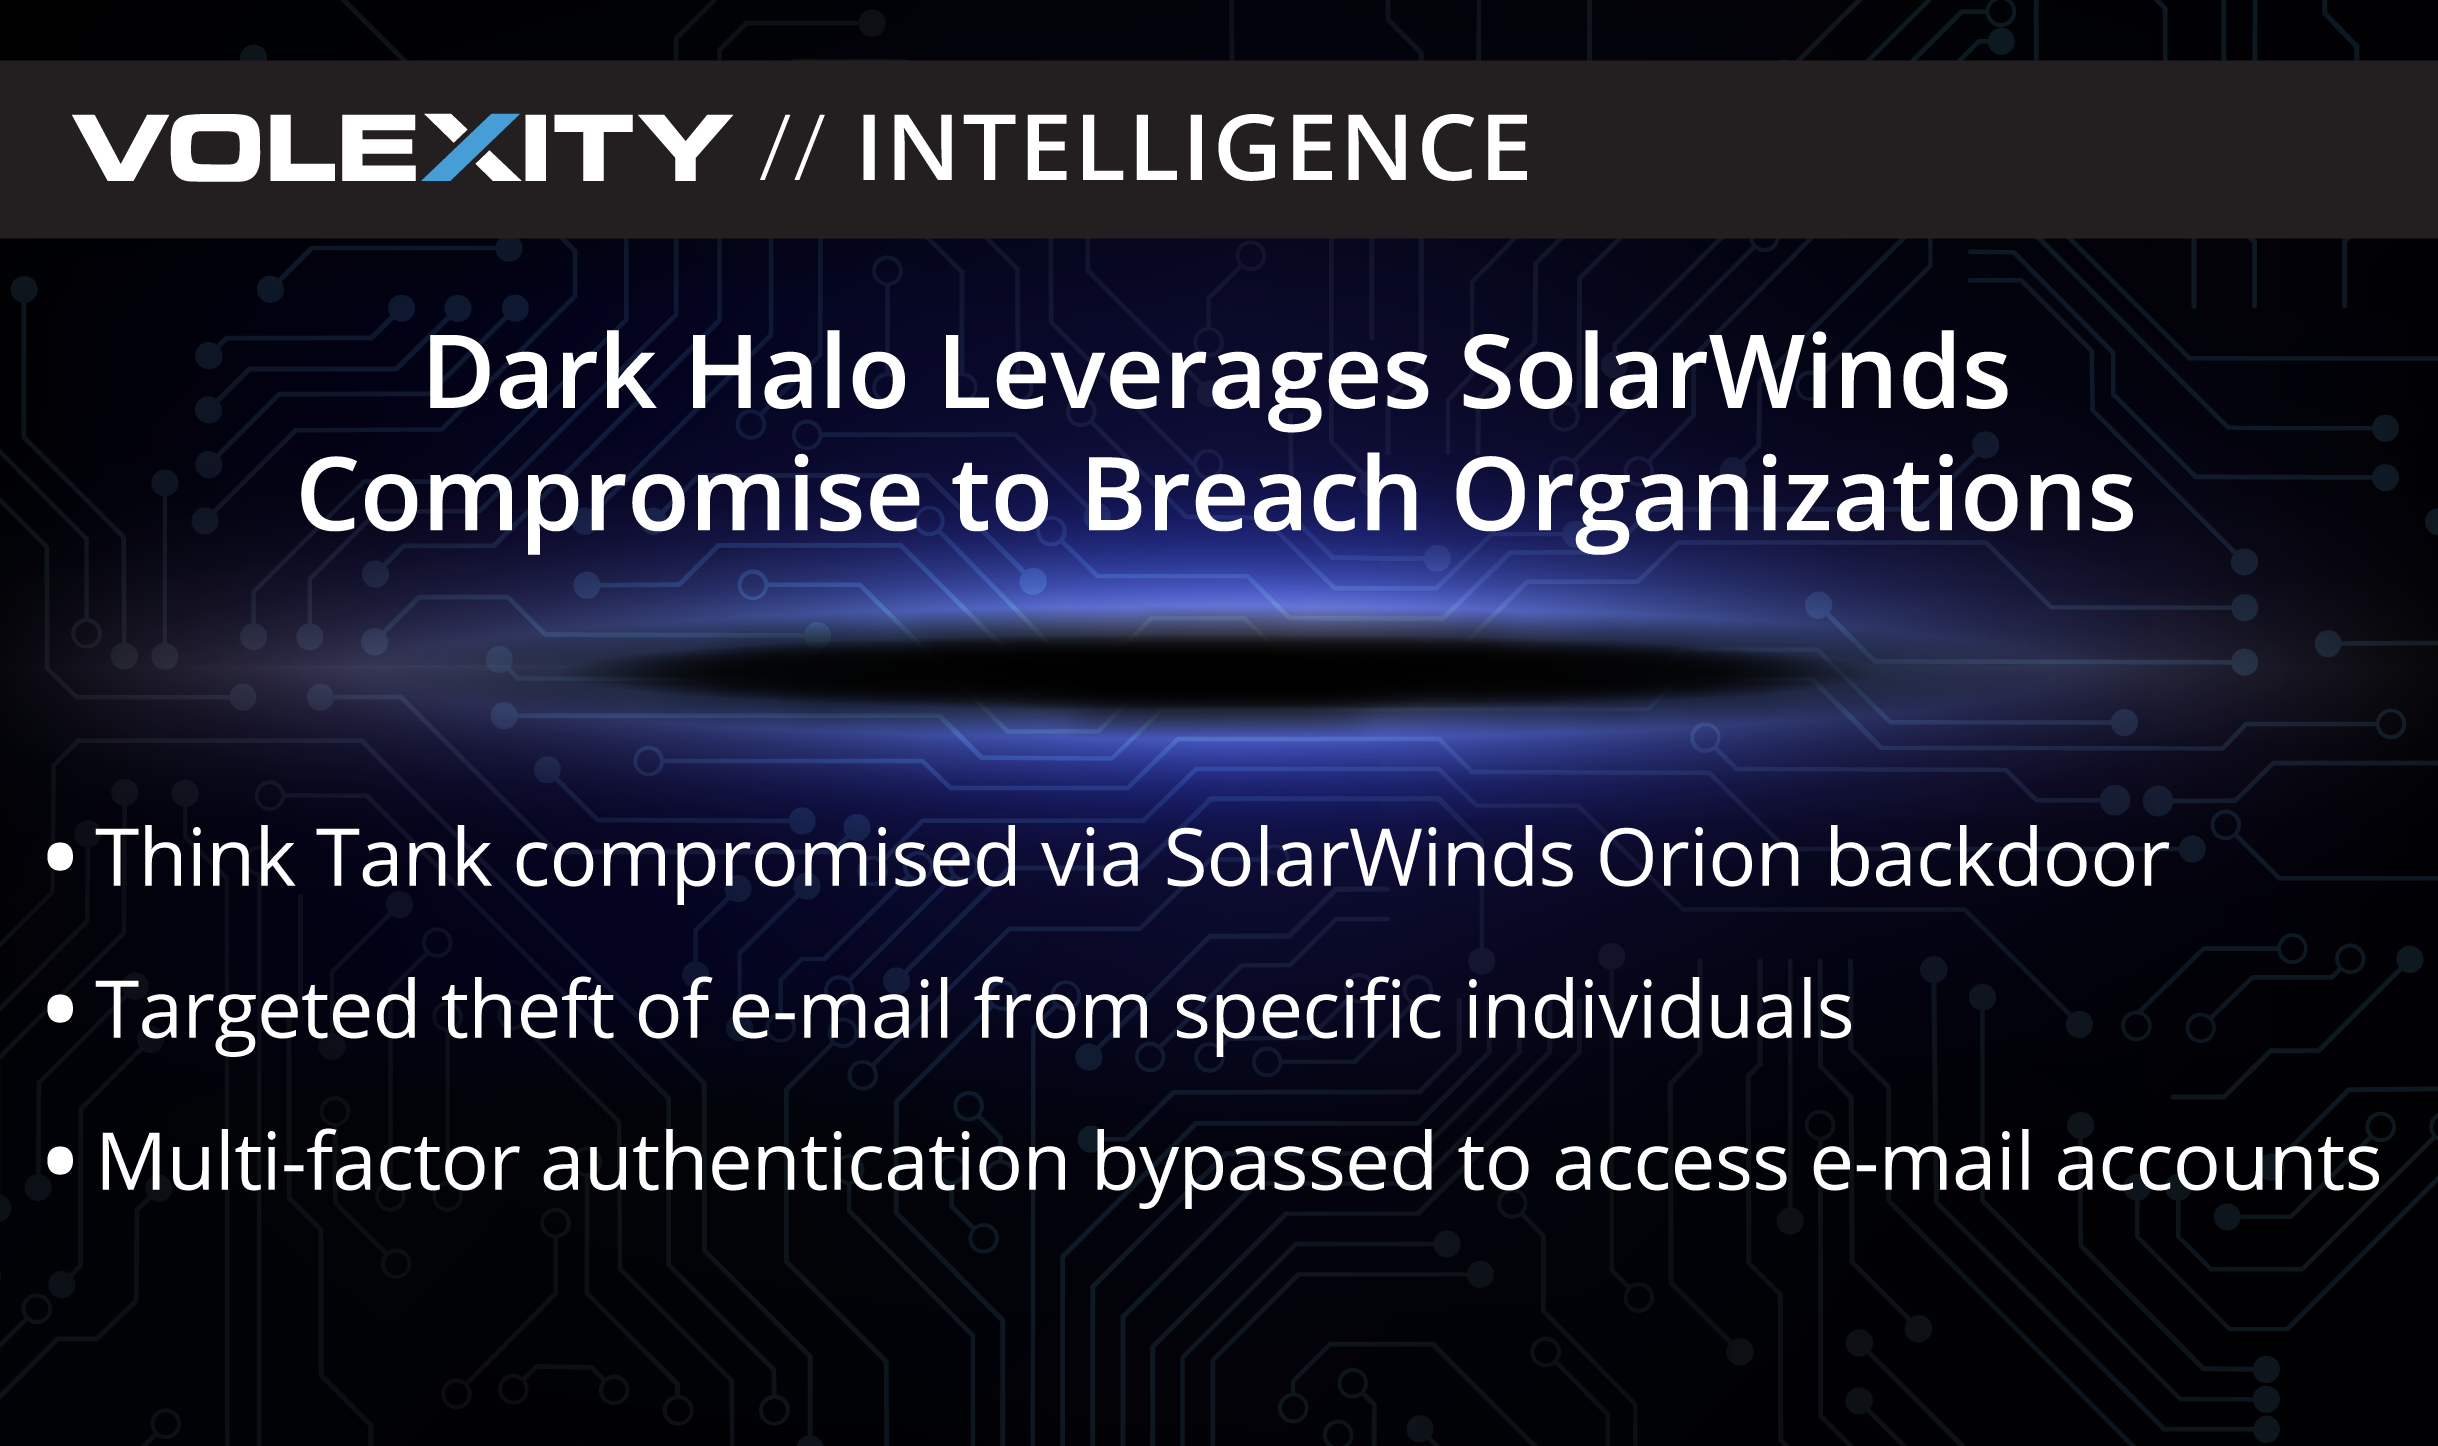 Dark Halo Leverages SolarWinds Compromise to Breach Organizations